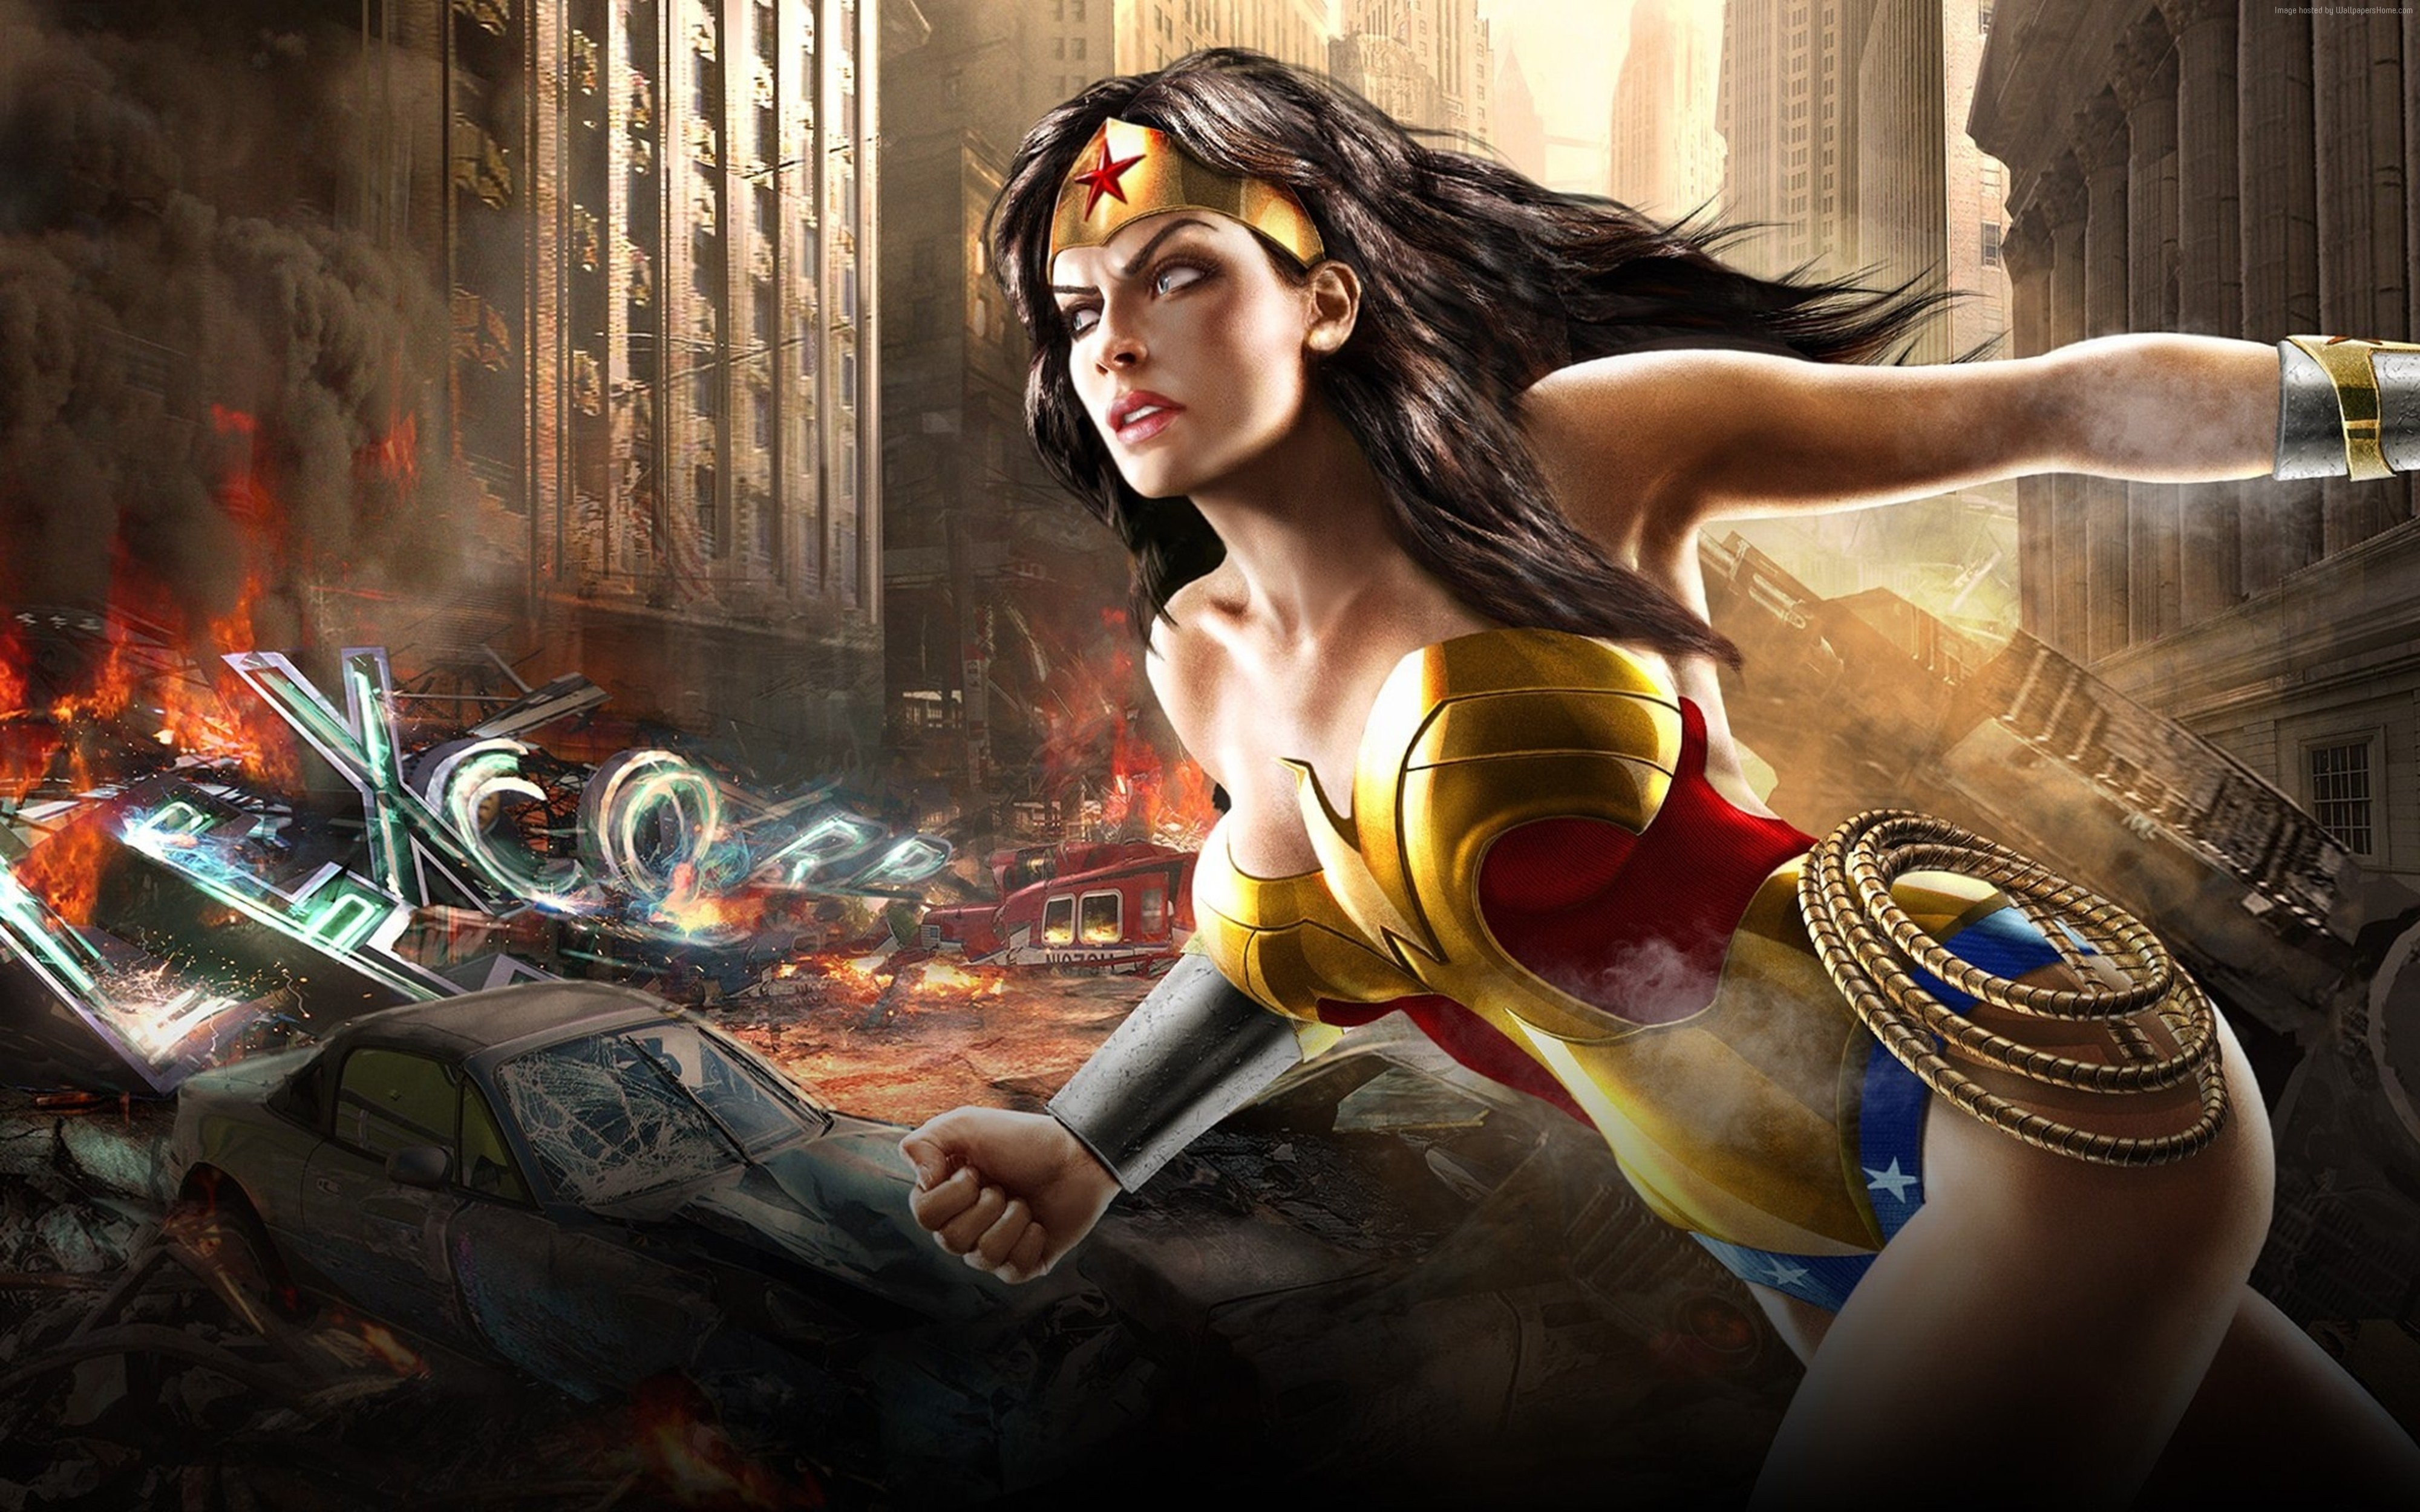 dc universe online 4000x2500 dcuo game mmorpg wonder woman marvel 2206